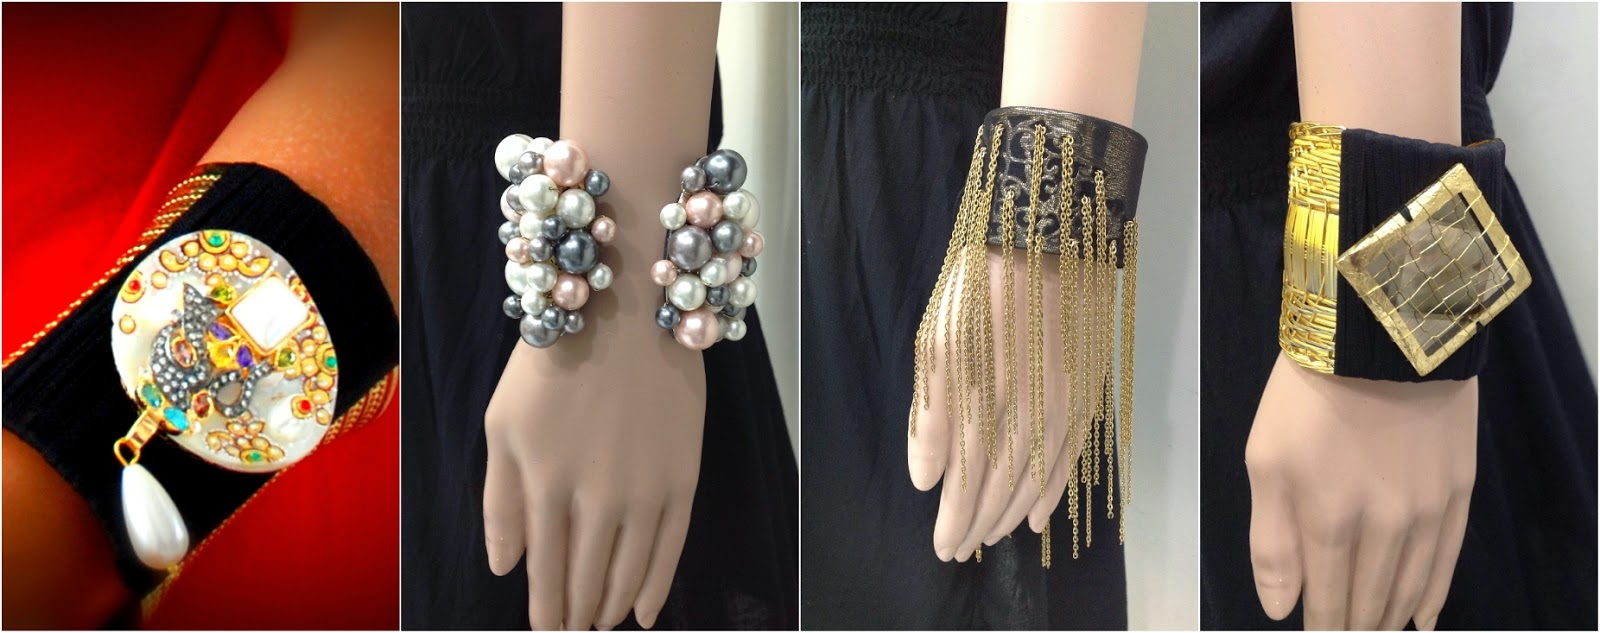 Rejuvenate Jewels cuff bracelets